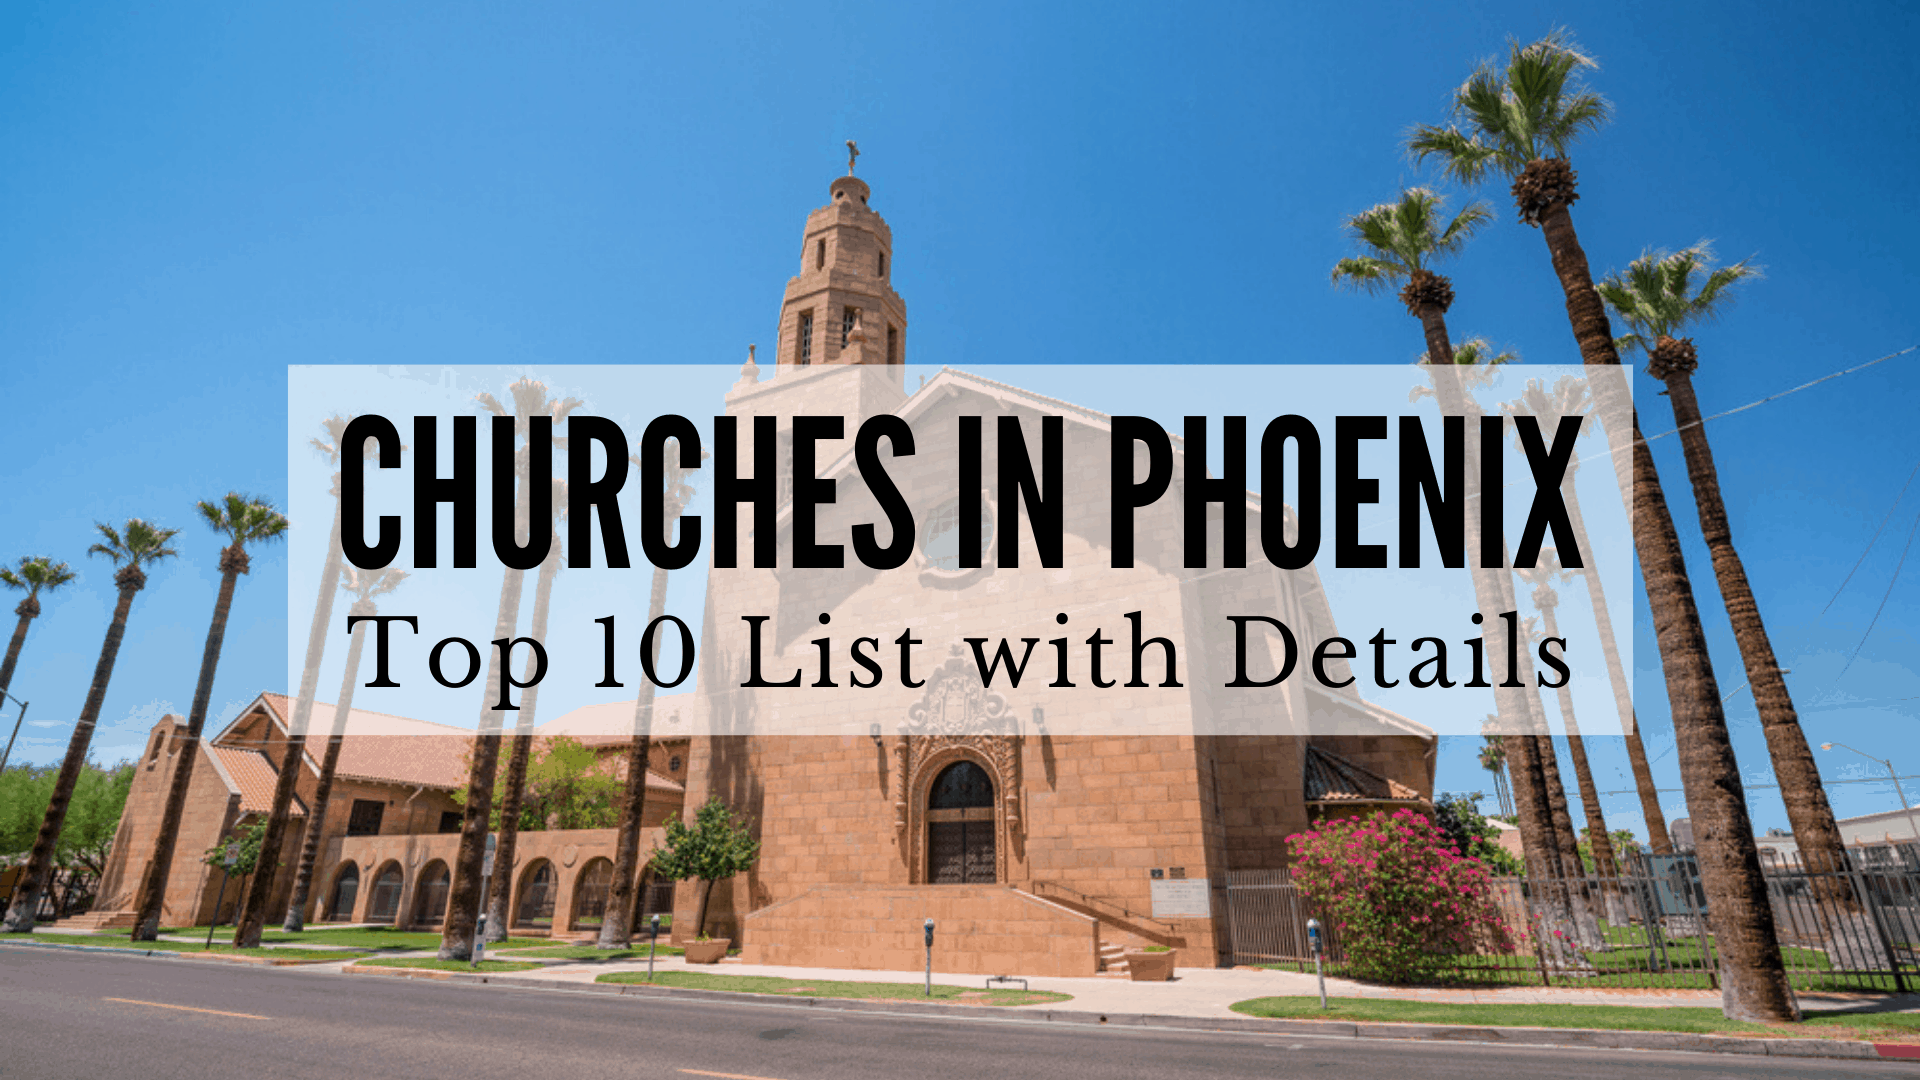 Churches in Phoenix, AZ - Top 10 List with Details